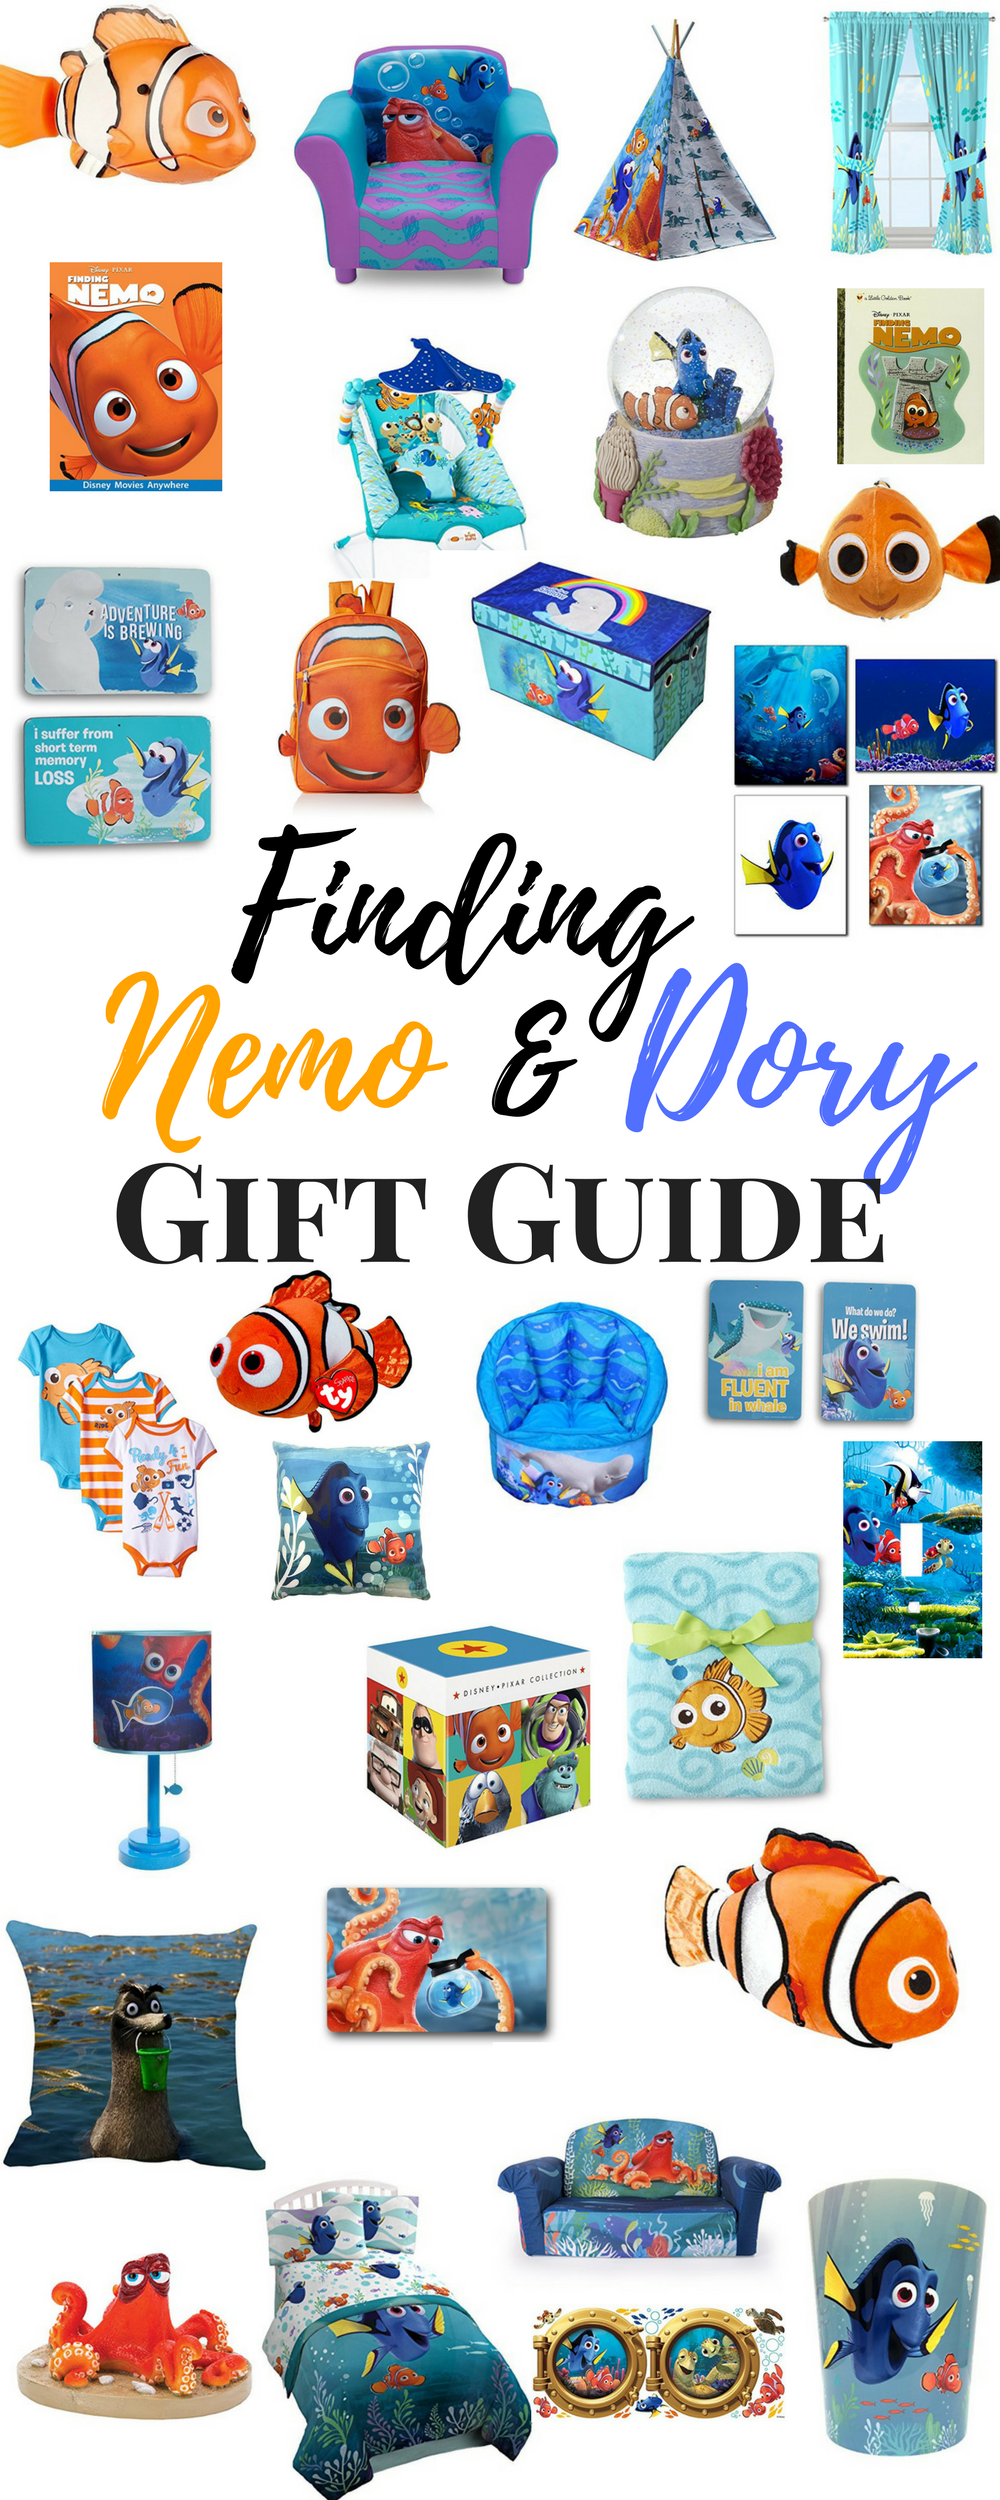 Finding Nemo and Finding Dory Gift Guide